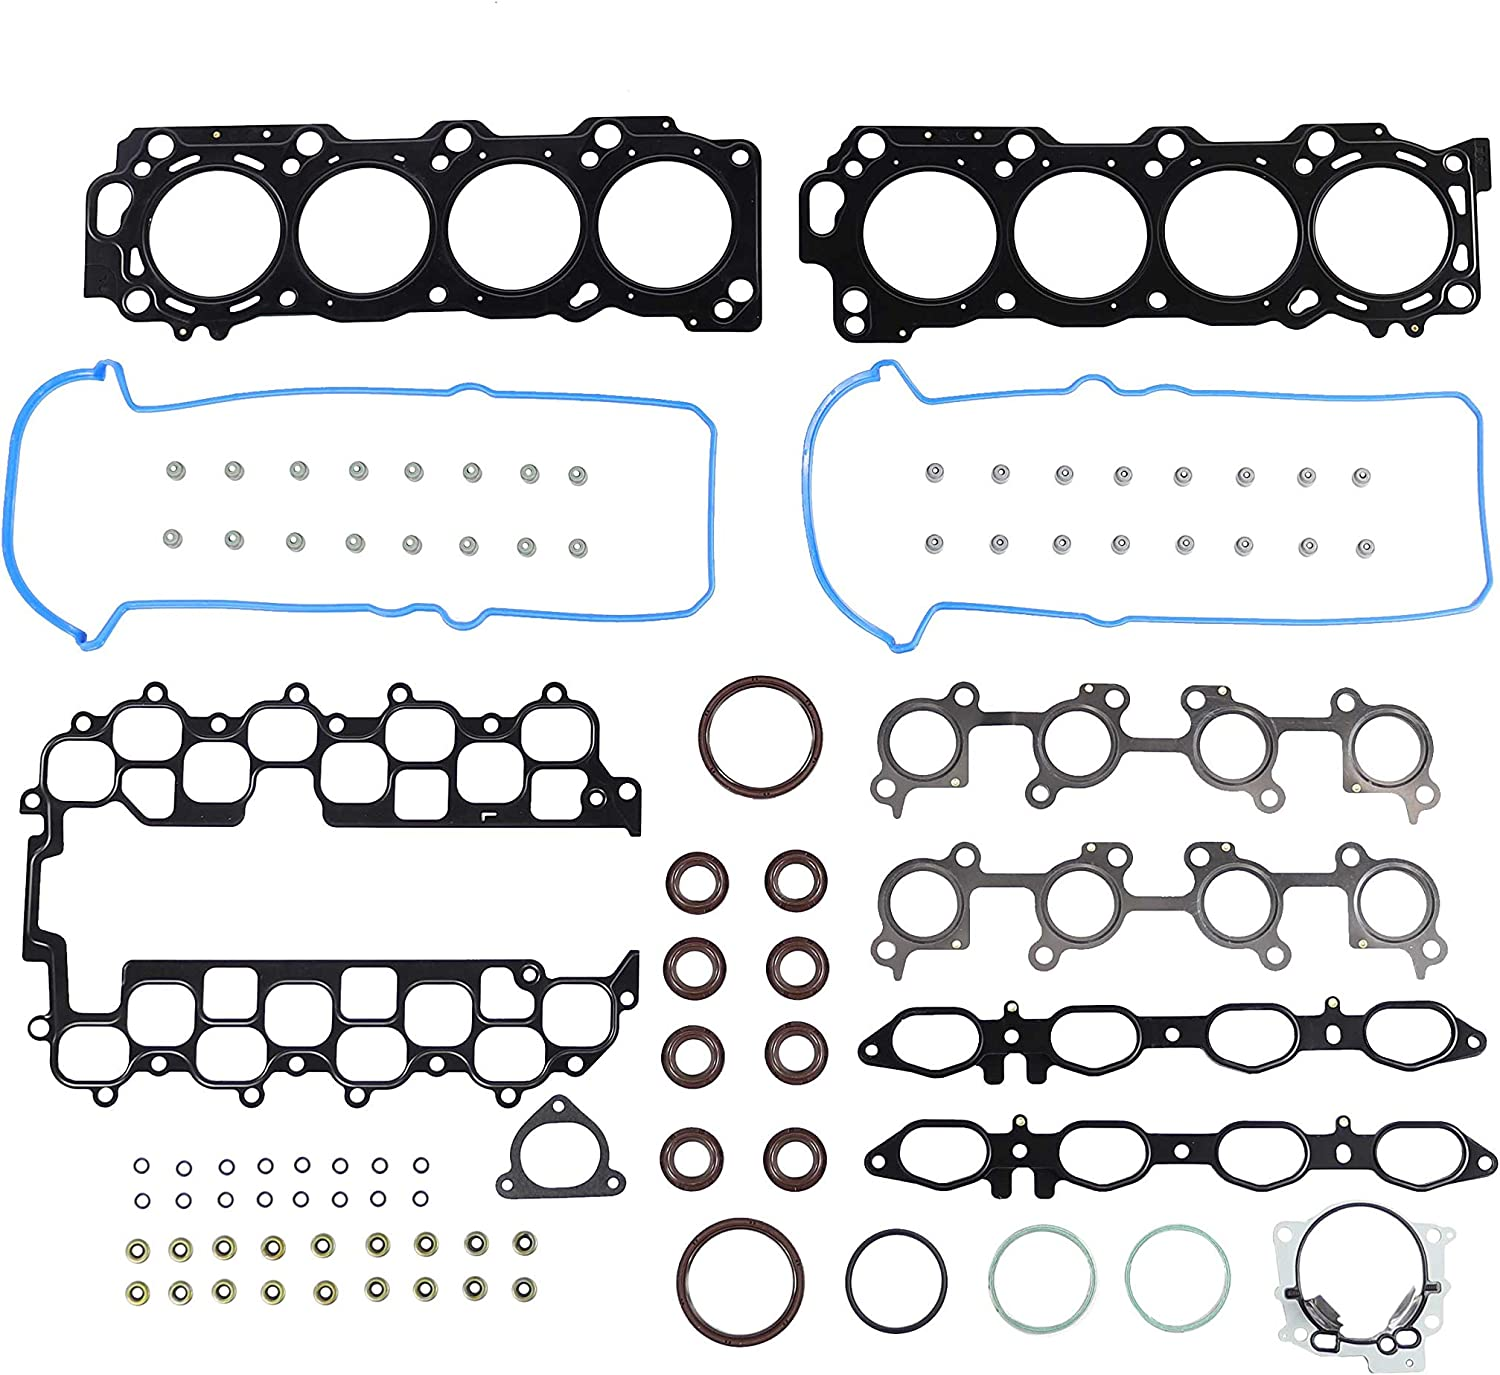 Head Gasket Set Bolt Kit Fits 01-10 Lexus SC430 4.3L V8 DOHC 32v 3UZFE